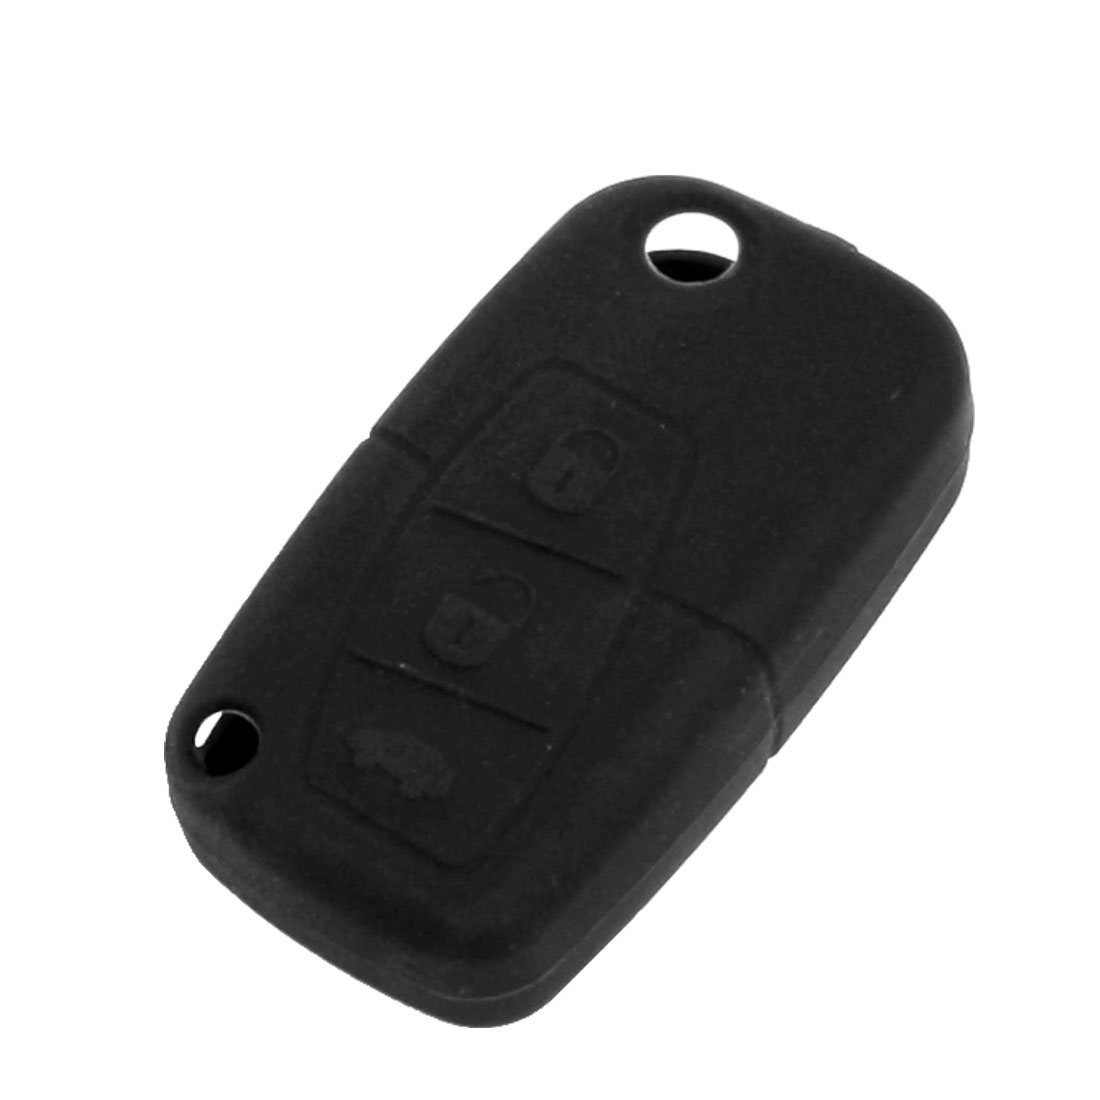 Black Soft Silicone Key Holder Case for Haima Family Freema